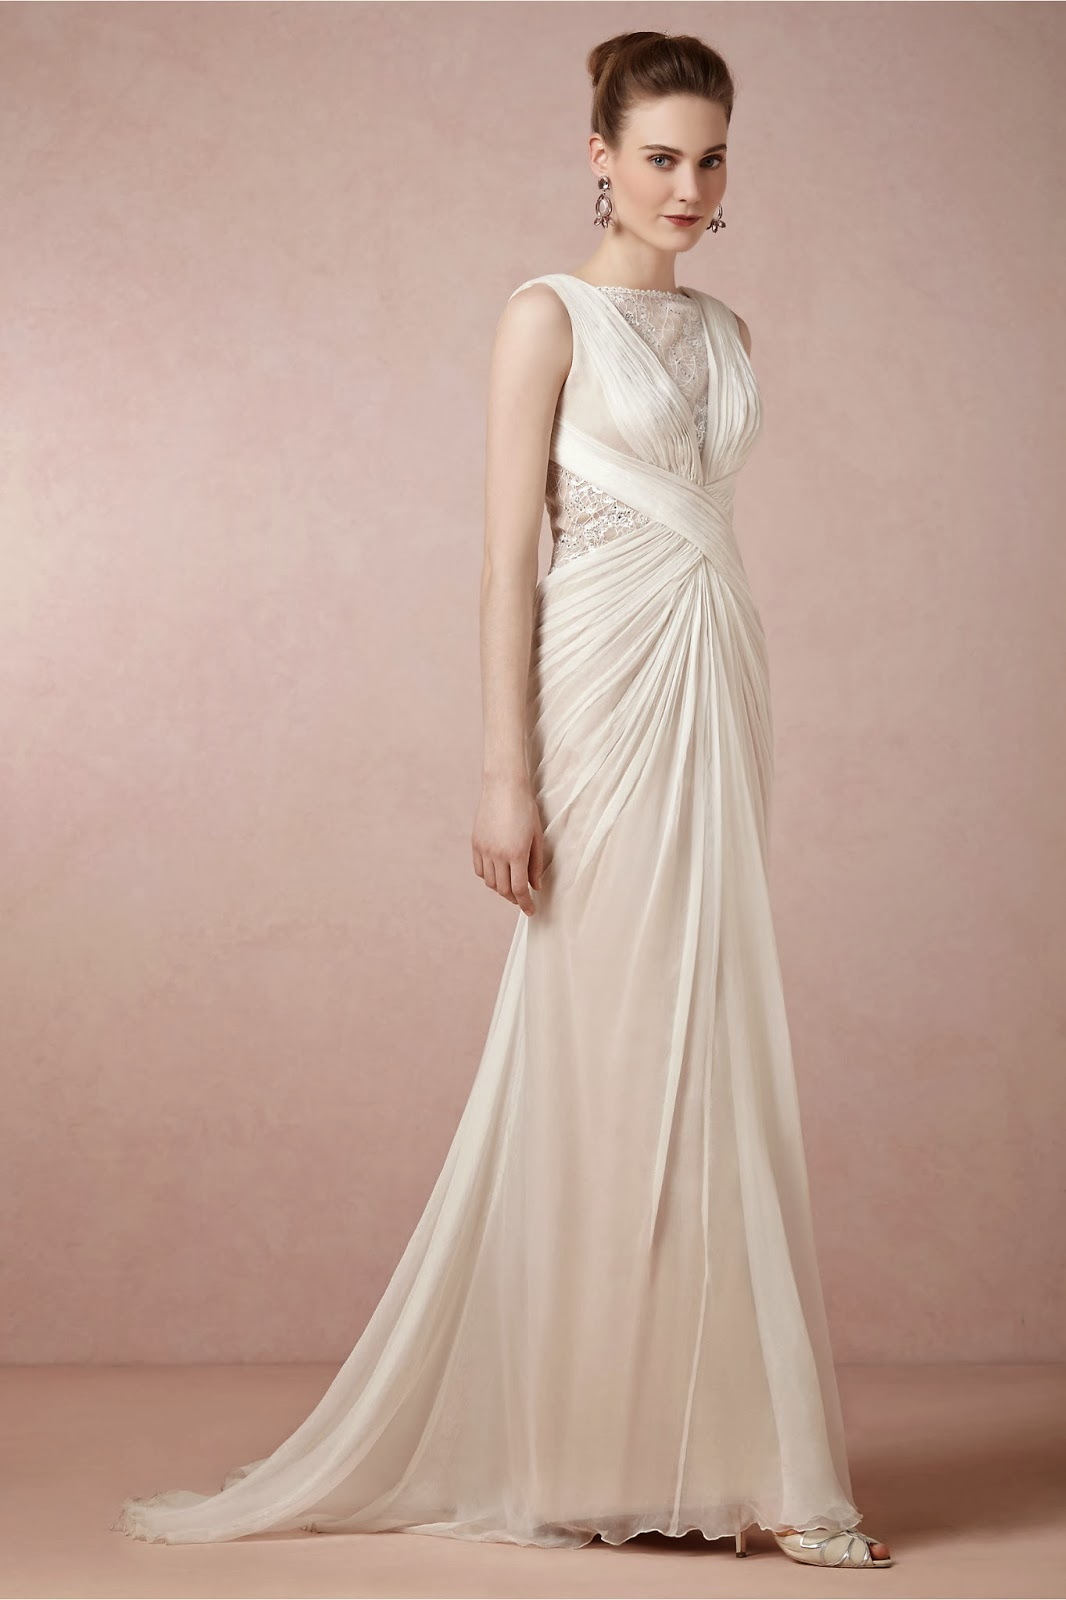 Fragments de Rêves - leyna gown BHLDN